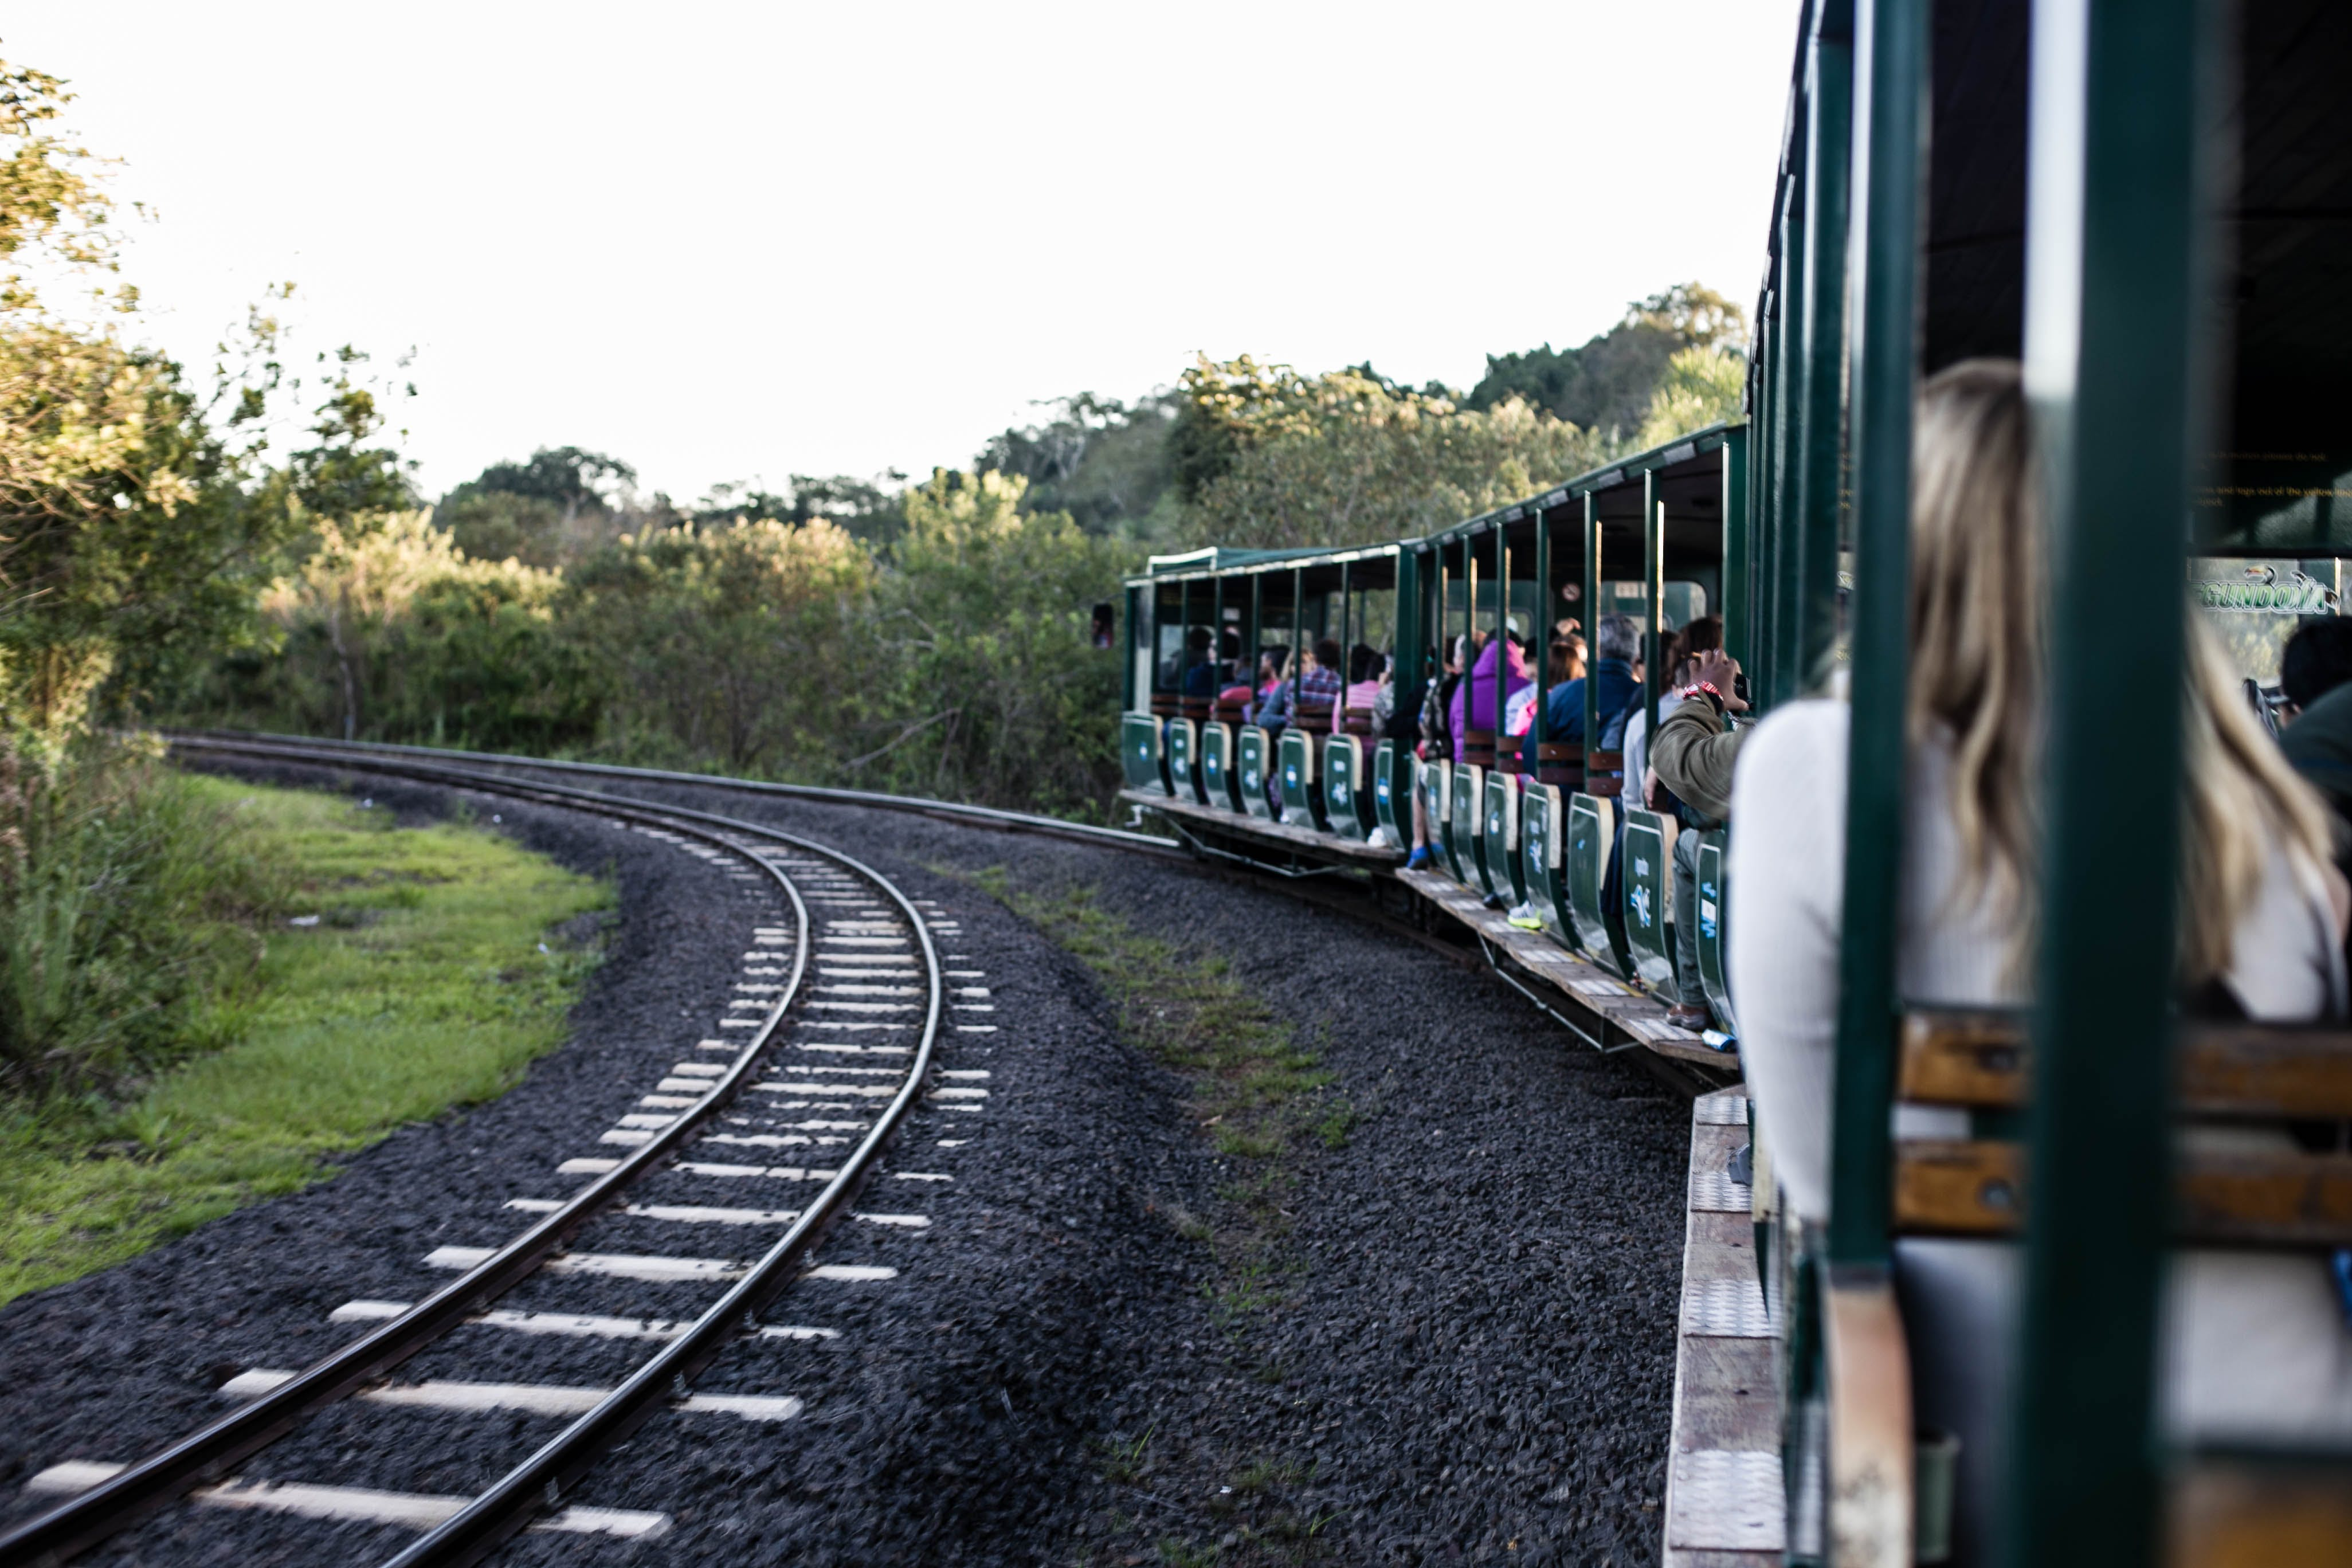 Group of People Riding Train